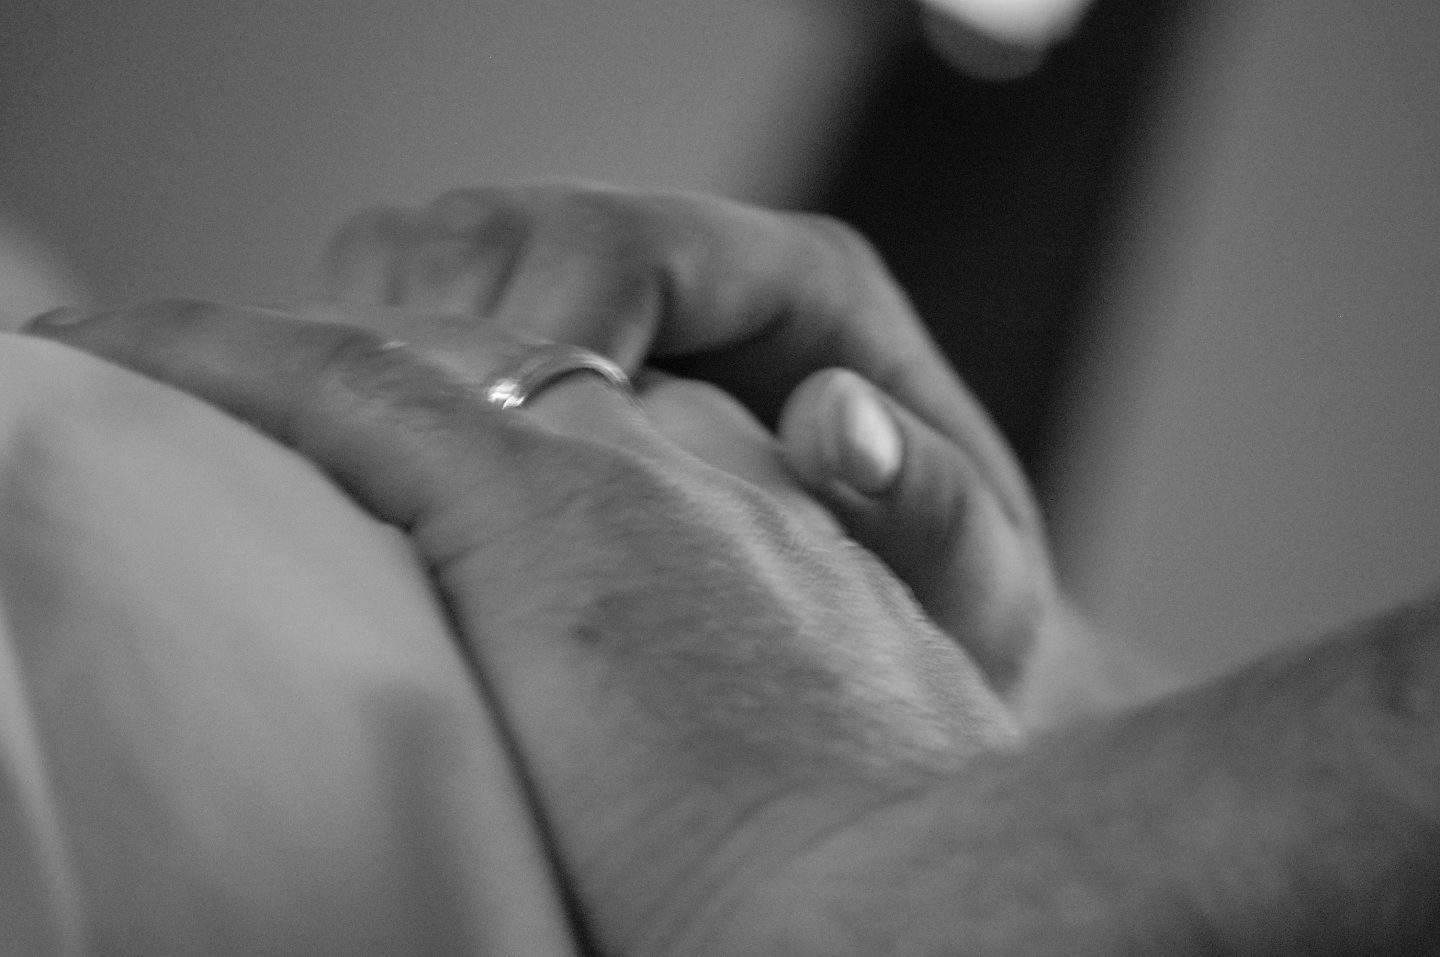 husband and wife experience childbirth and holding hands